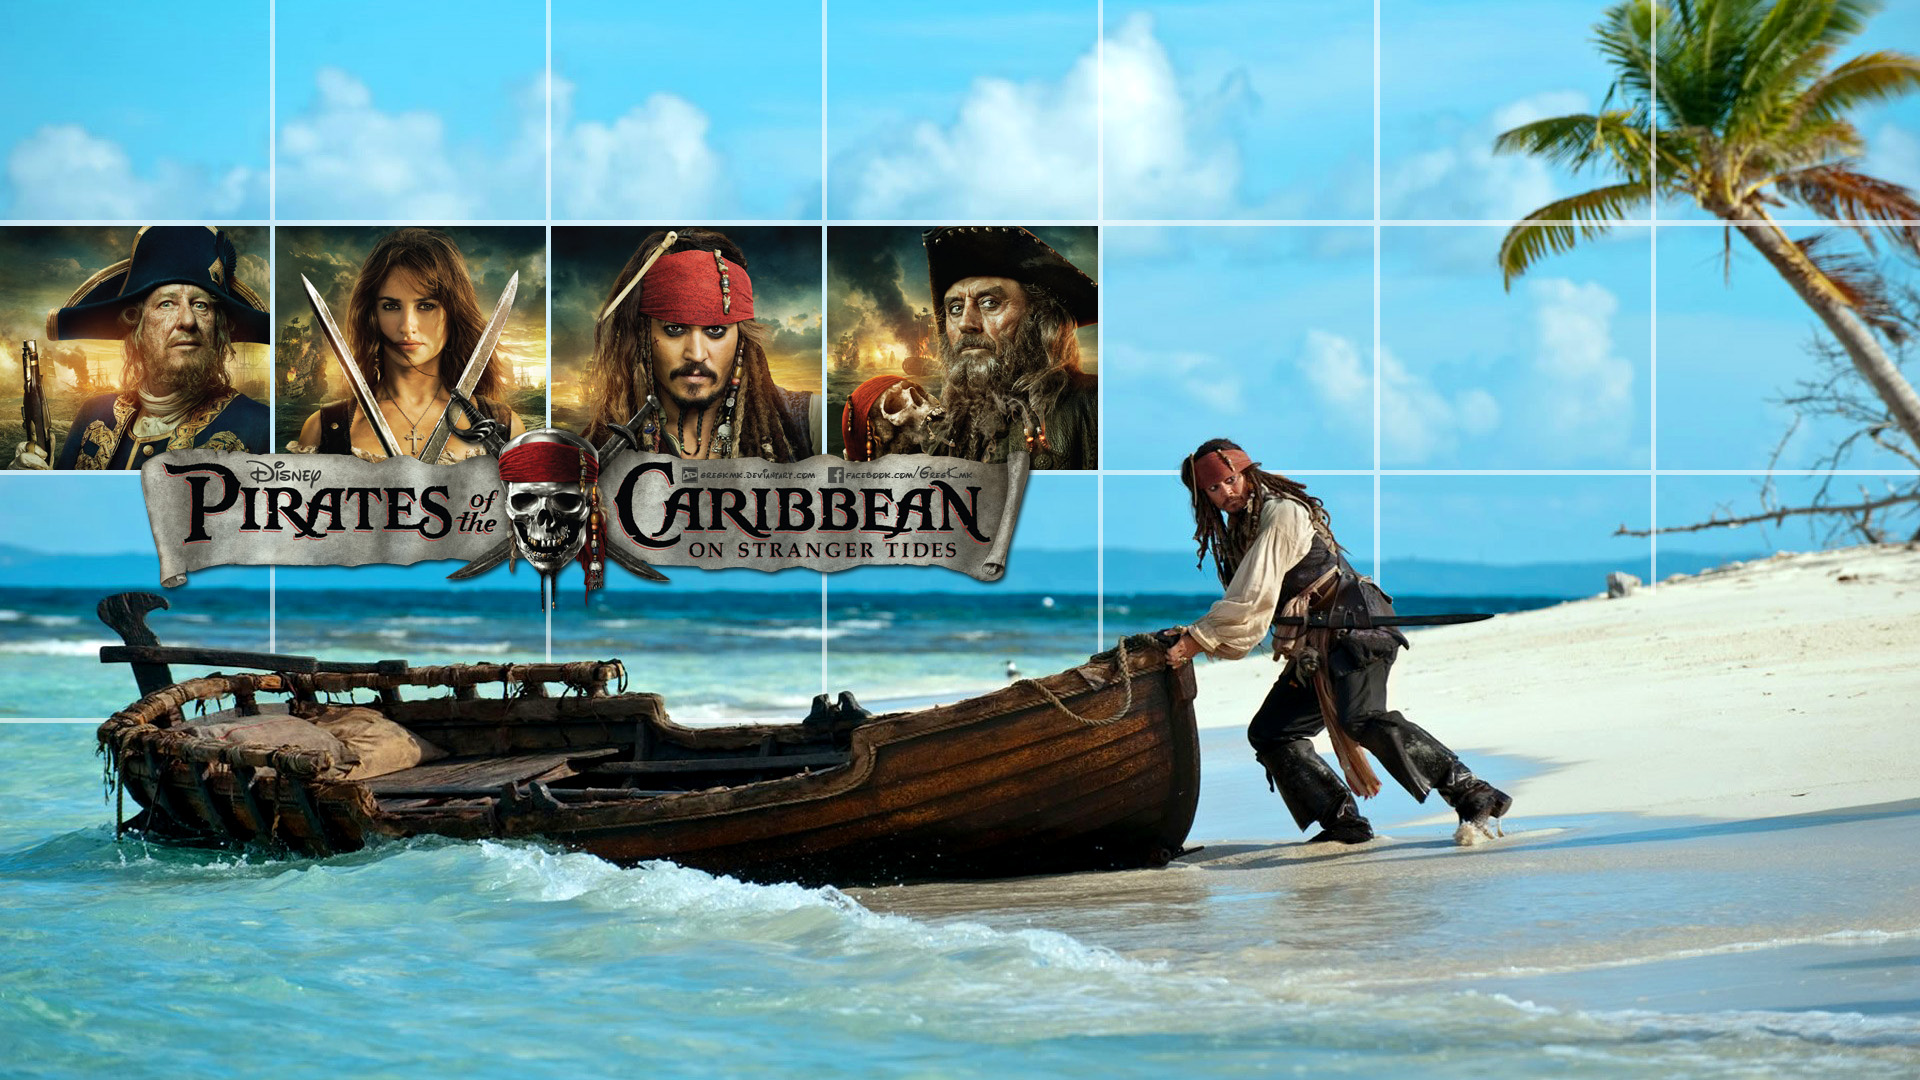 Pirates Of The Caribbean Wallpaper 2 By Gregkmk On Deviantart